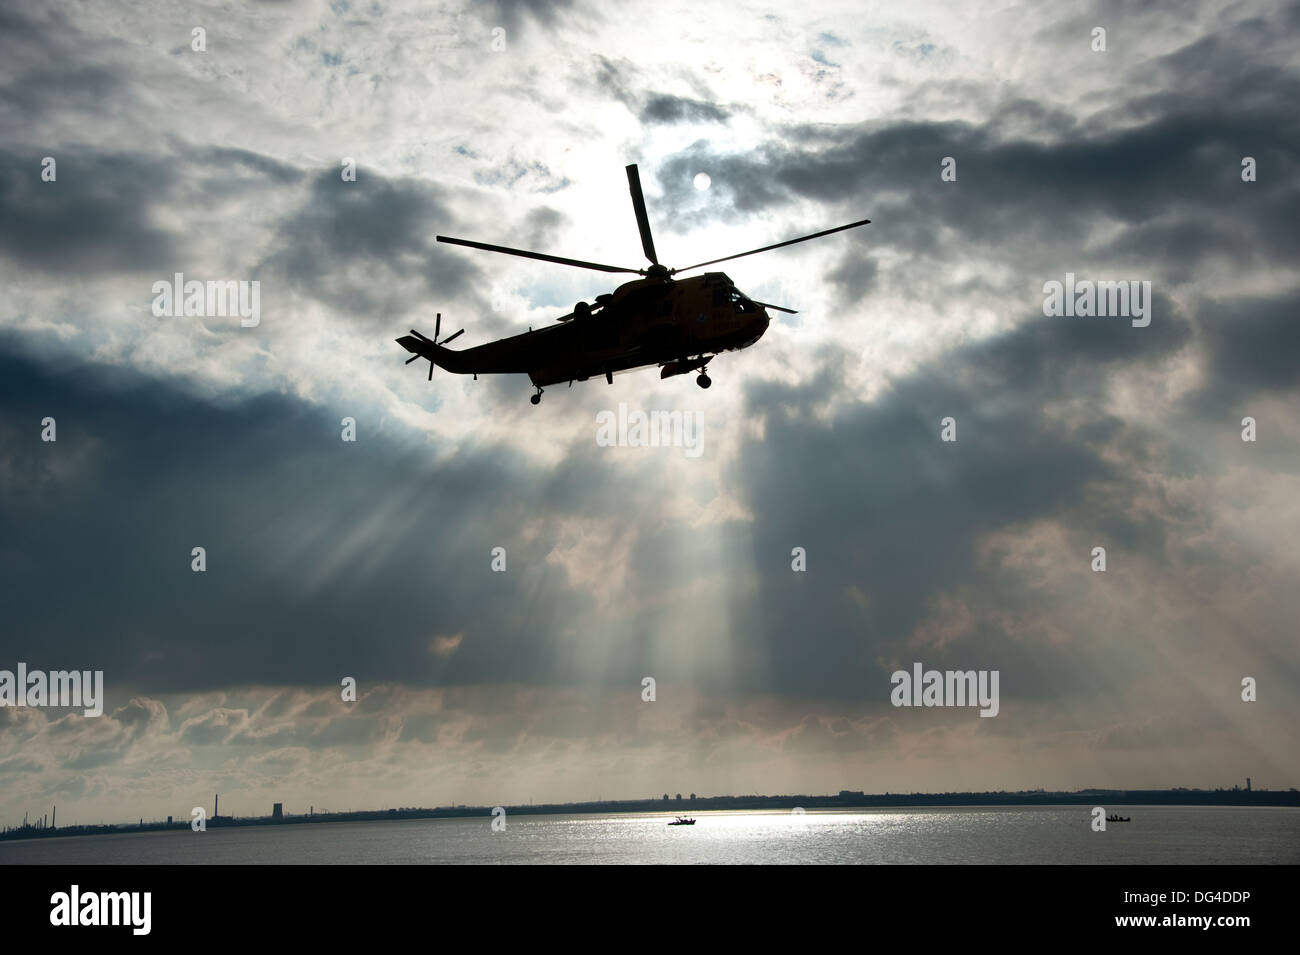 Seaking helicopter rescue dark foreboding sky - Stock Image